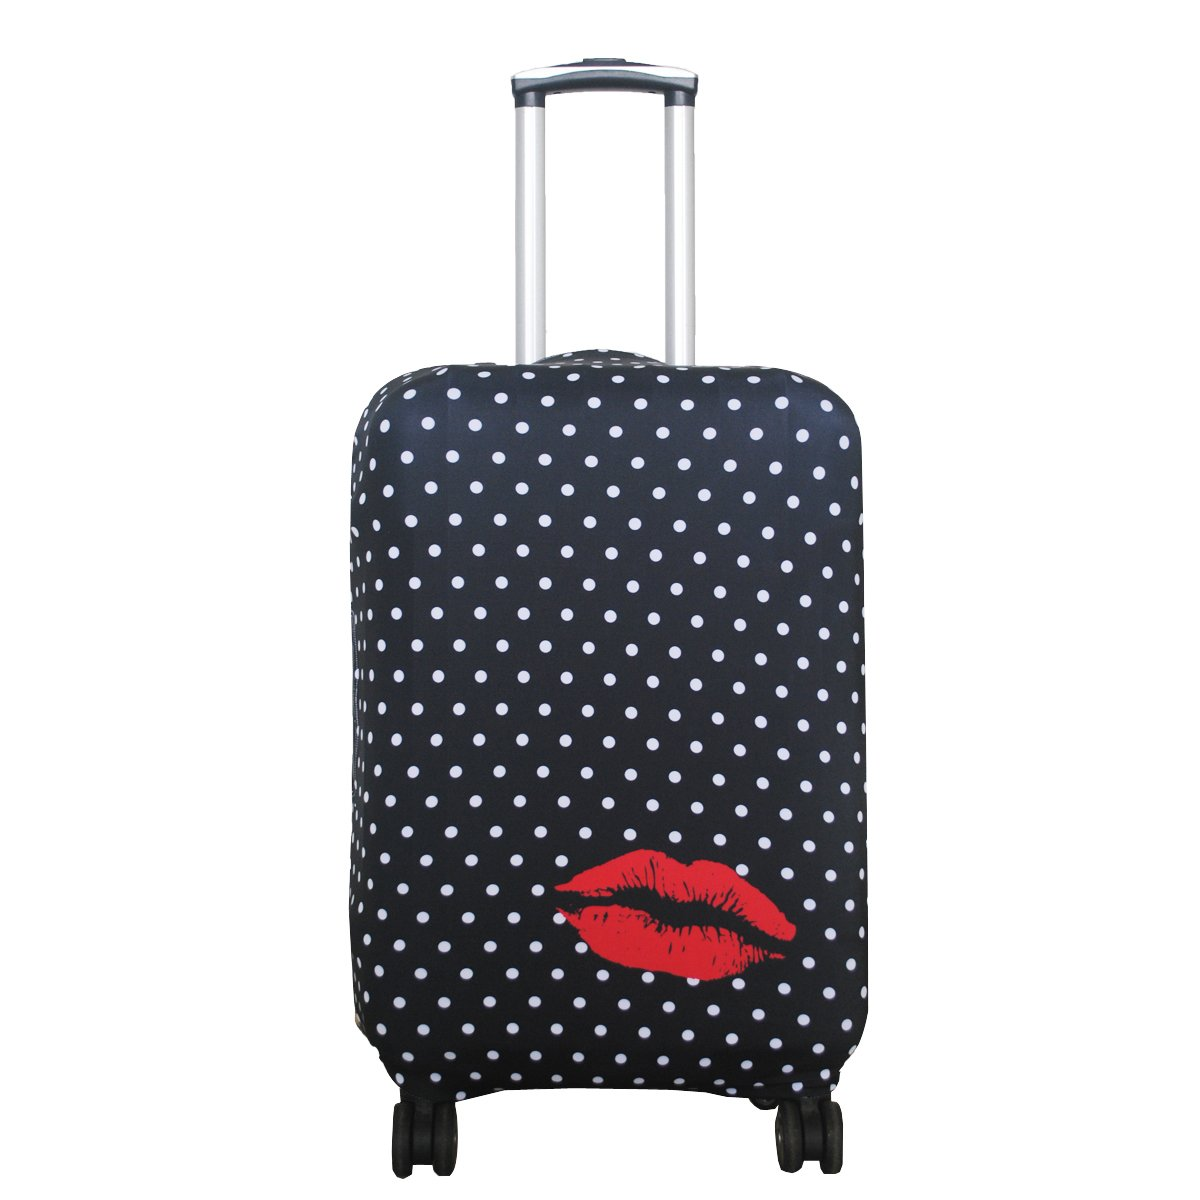 Explore Land Travel Luggage Cover Suitcase Protector Fits 18-32 Inch Luggage (Polkadot, L(27-30 inch Luggage)) by Explore Land